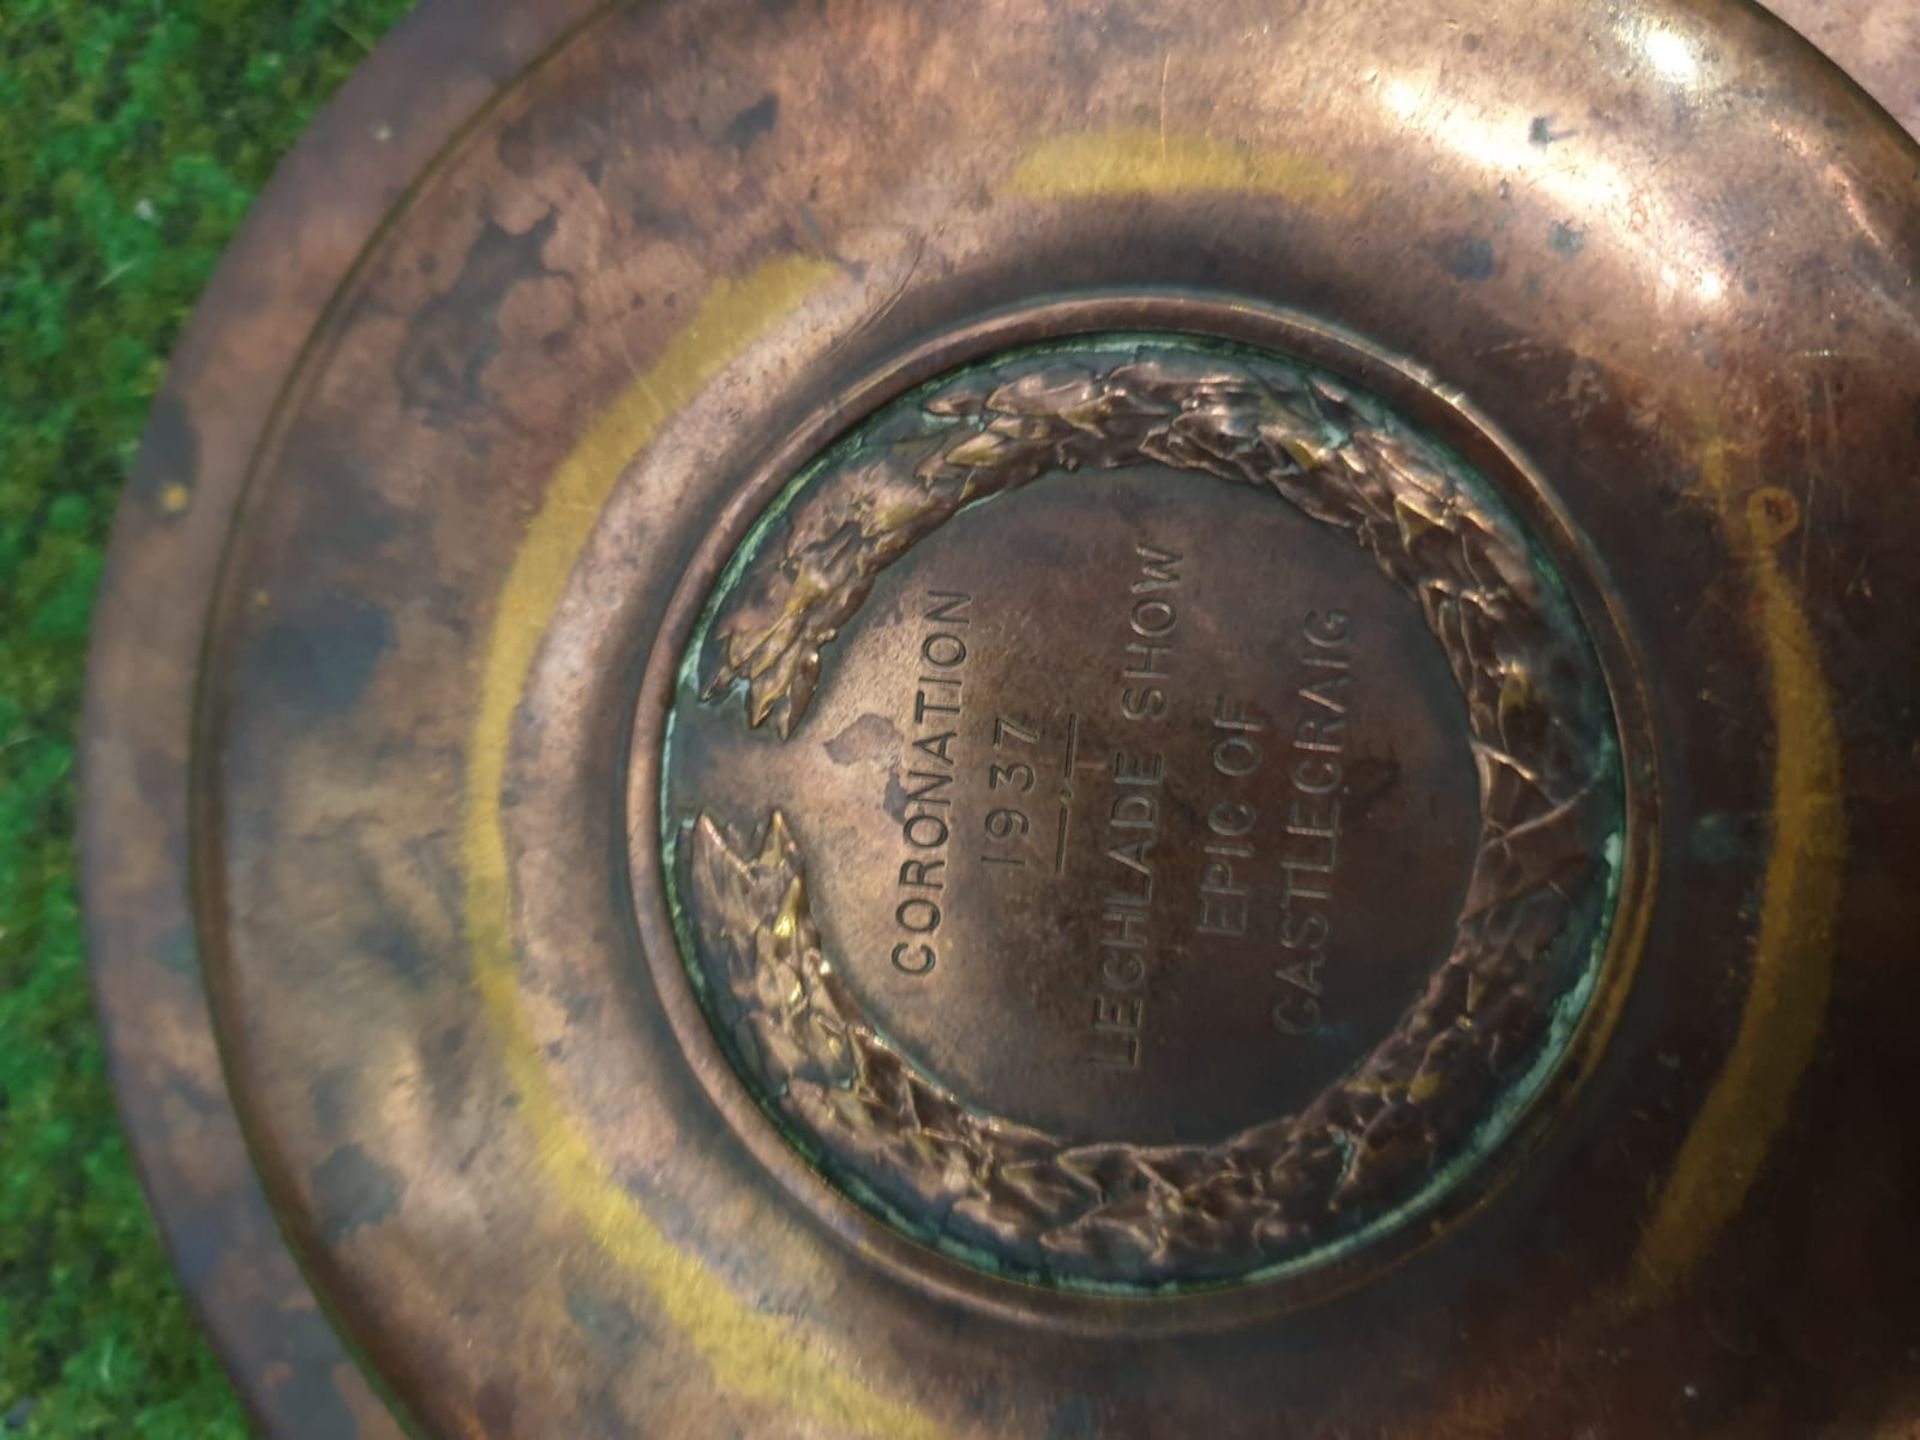 2 x Brass commemorative plates stamped on reverse Coronation 1937 Lechlade Show Epic of Castlecraig, - Image 3 of 7